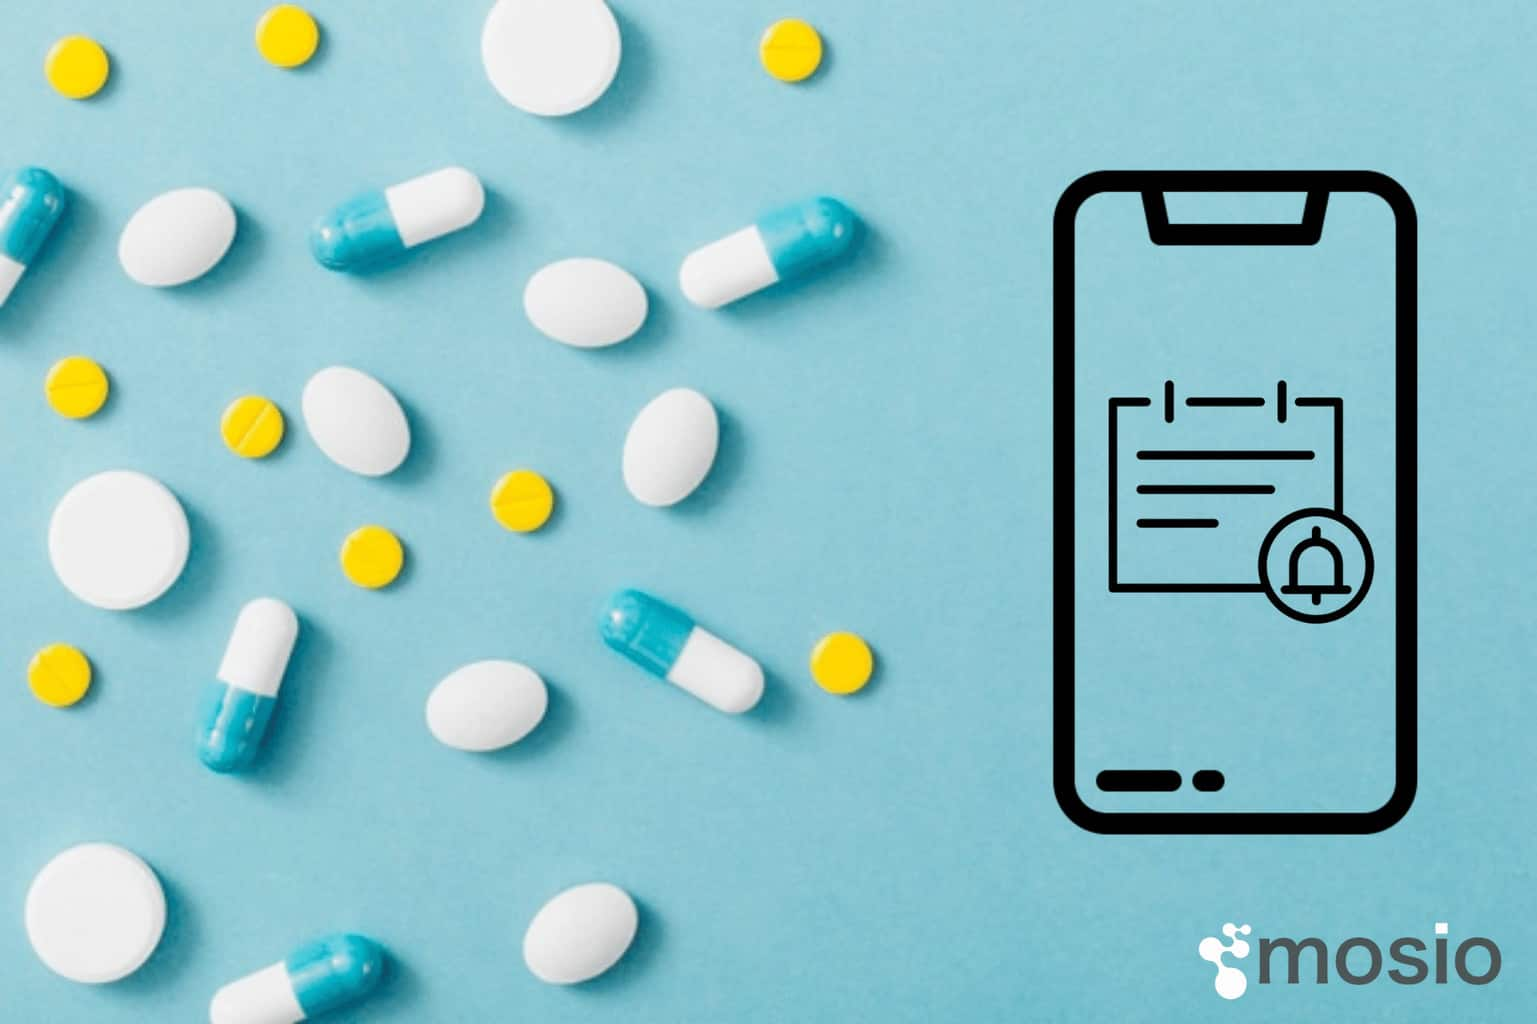 21 Studies Showing the Effectiveness of Text Messaging to Improve Medication Adherence